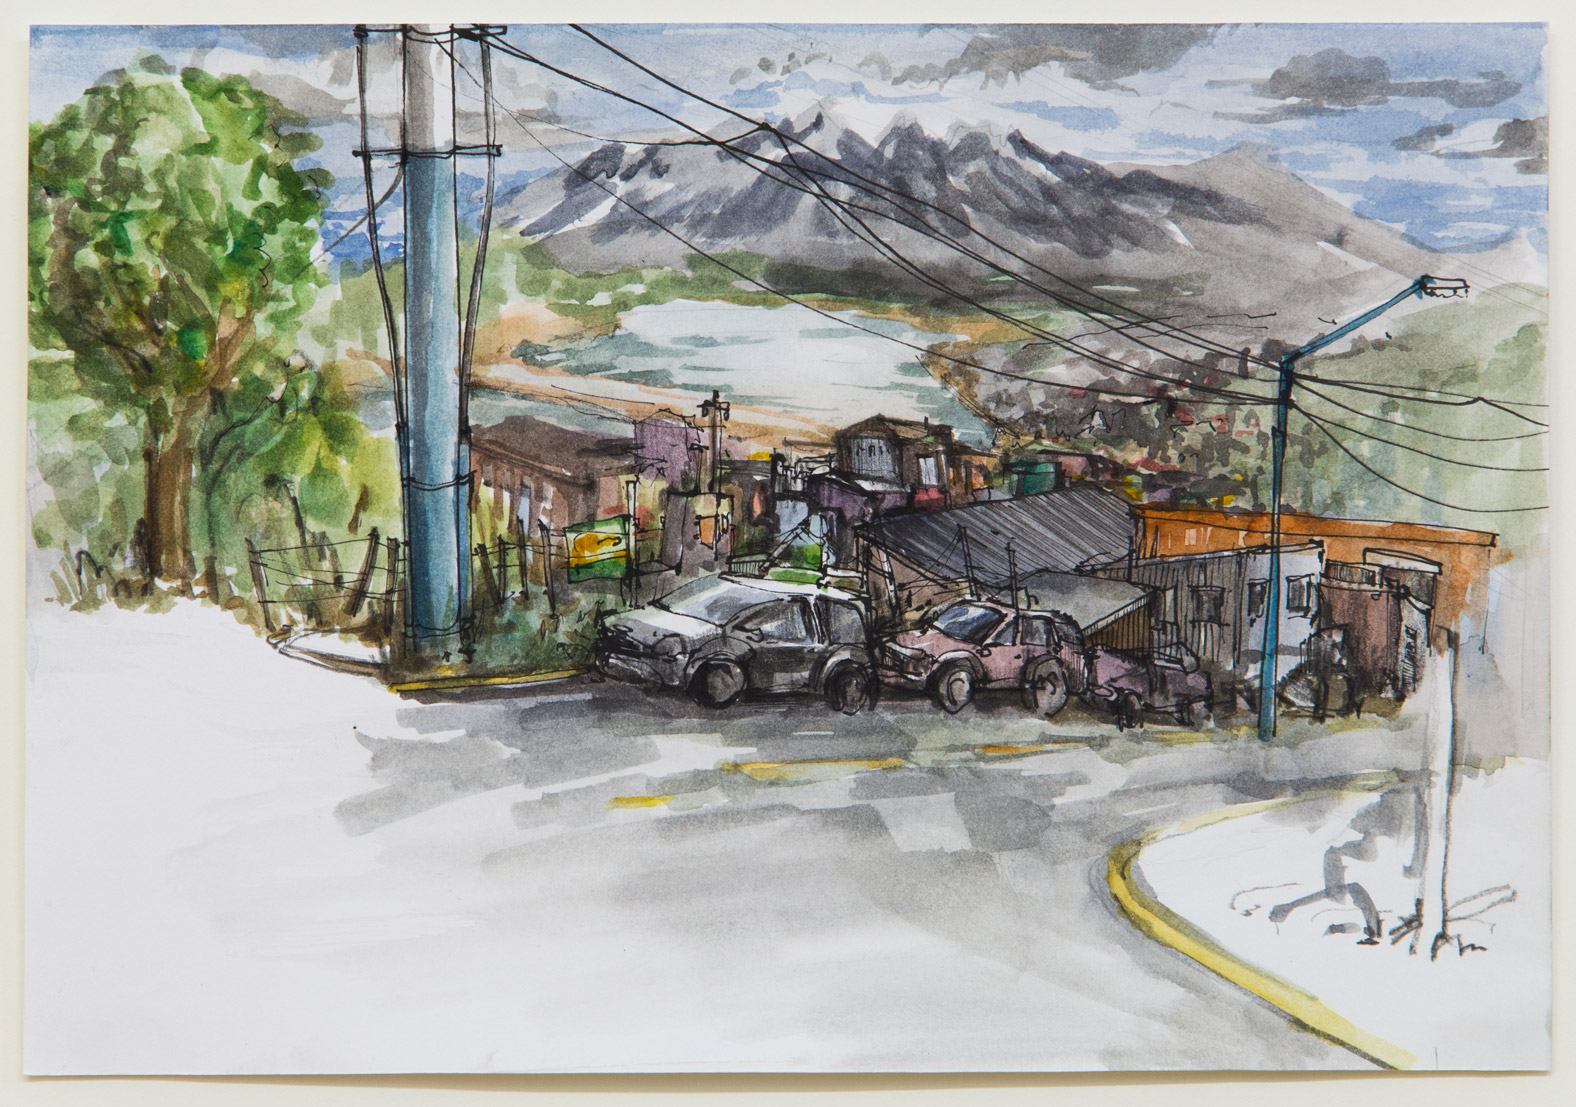 Ushuaia; 28 x 21 cm; watercolour, ink and pencil on paper; 2018